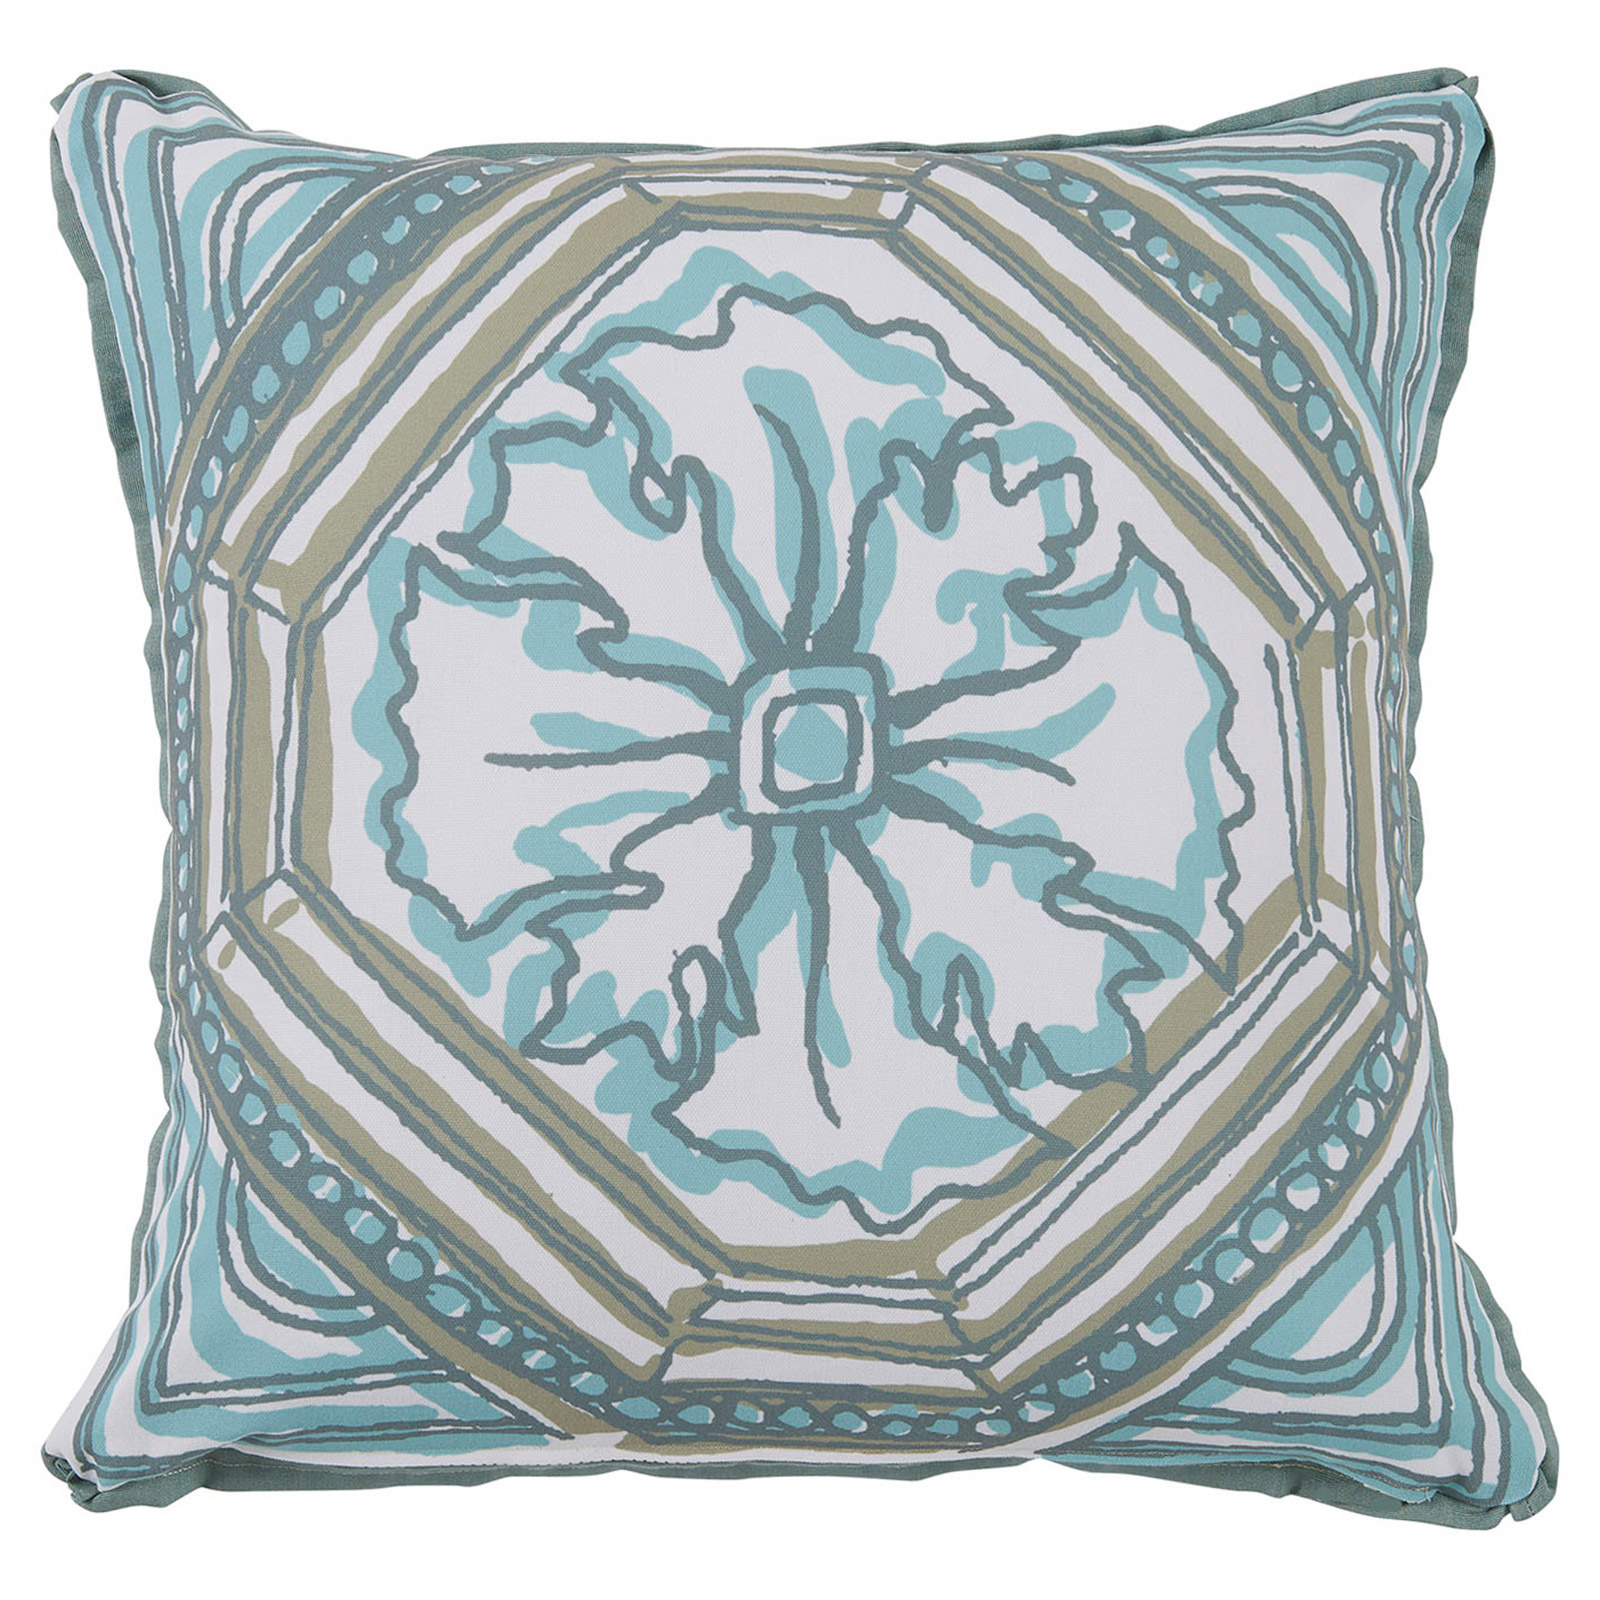 Lydie Coastal Floral Aqua Sketch Outdoor Pillow - 20x20